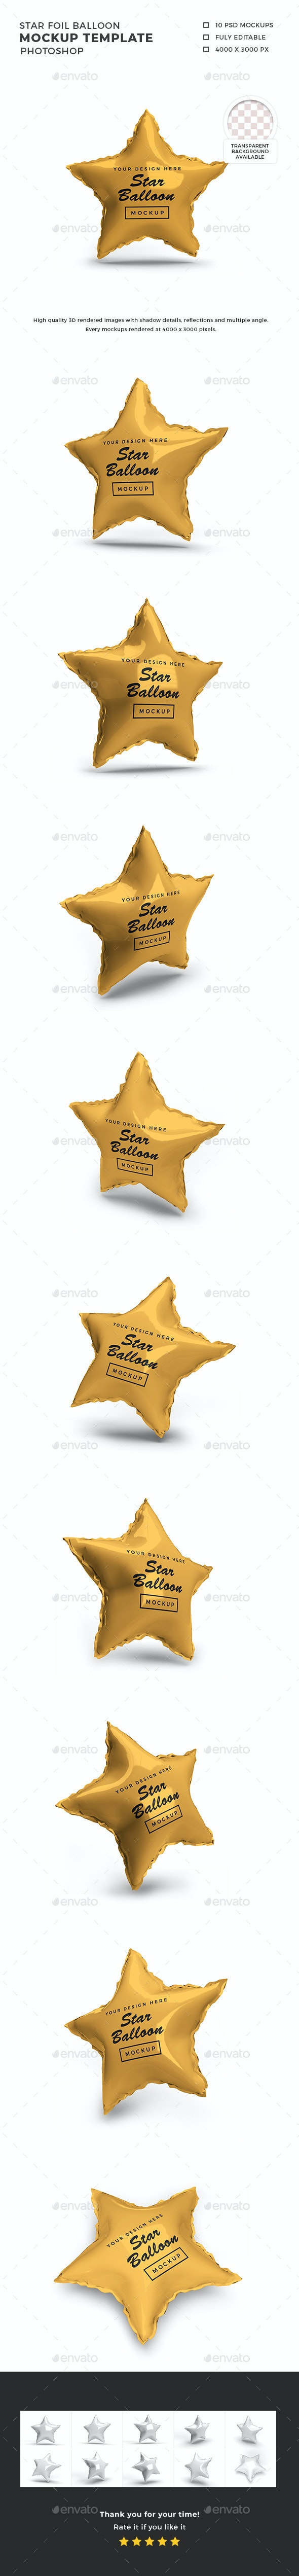 Star Foil Balloon 3D Mockup Template - Product Mock-Ups Graphics